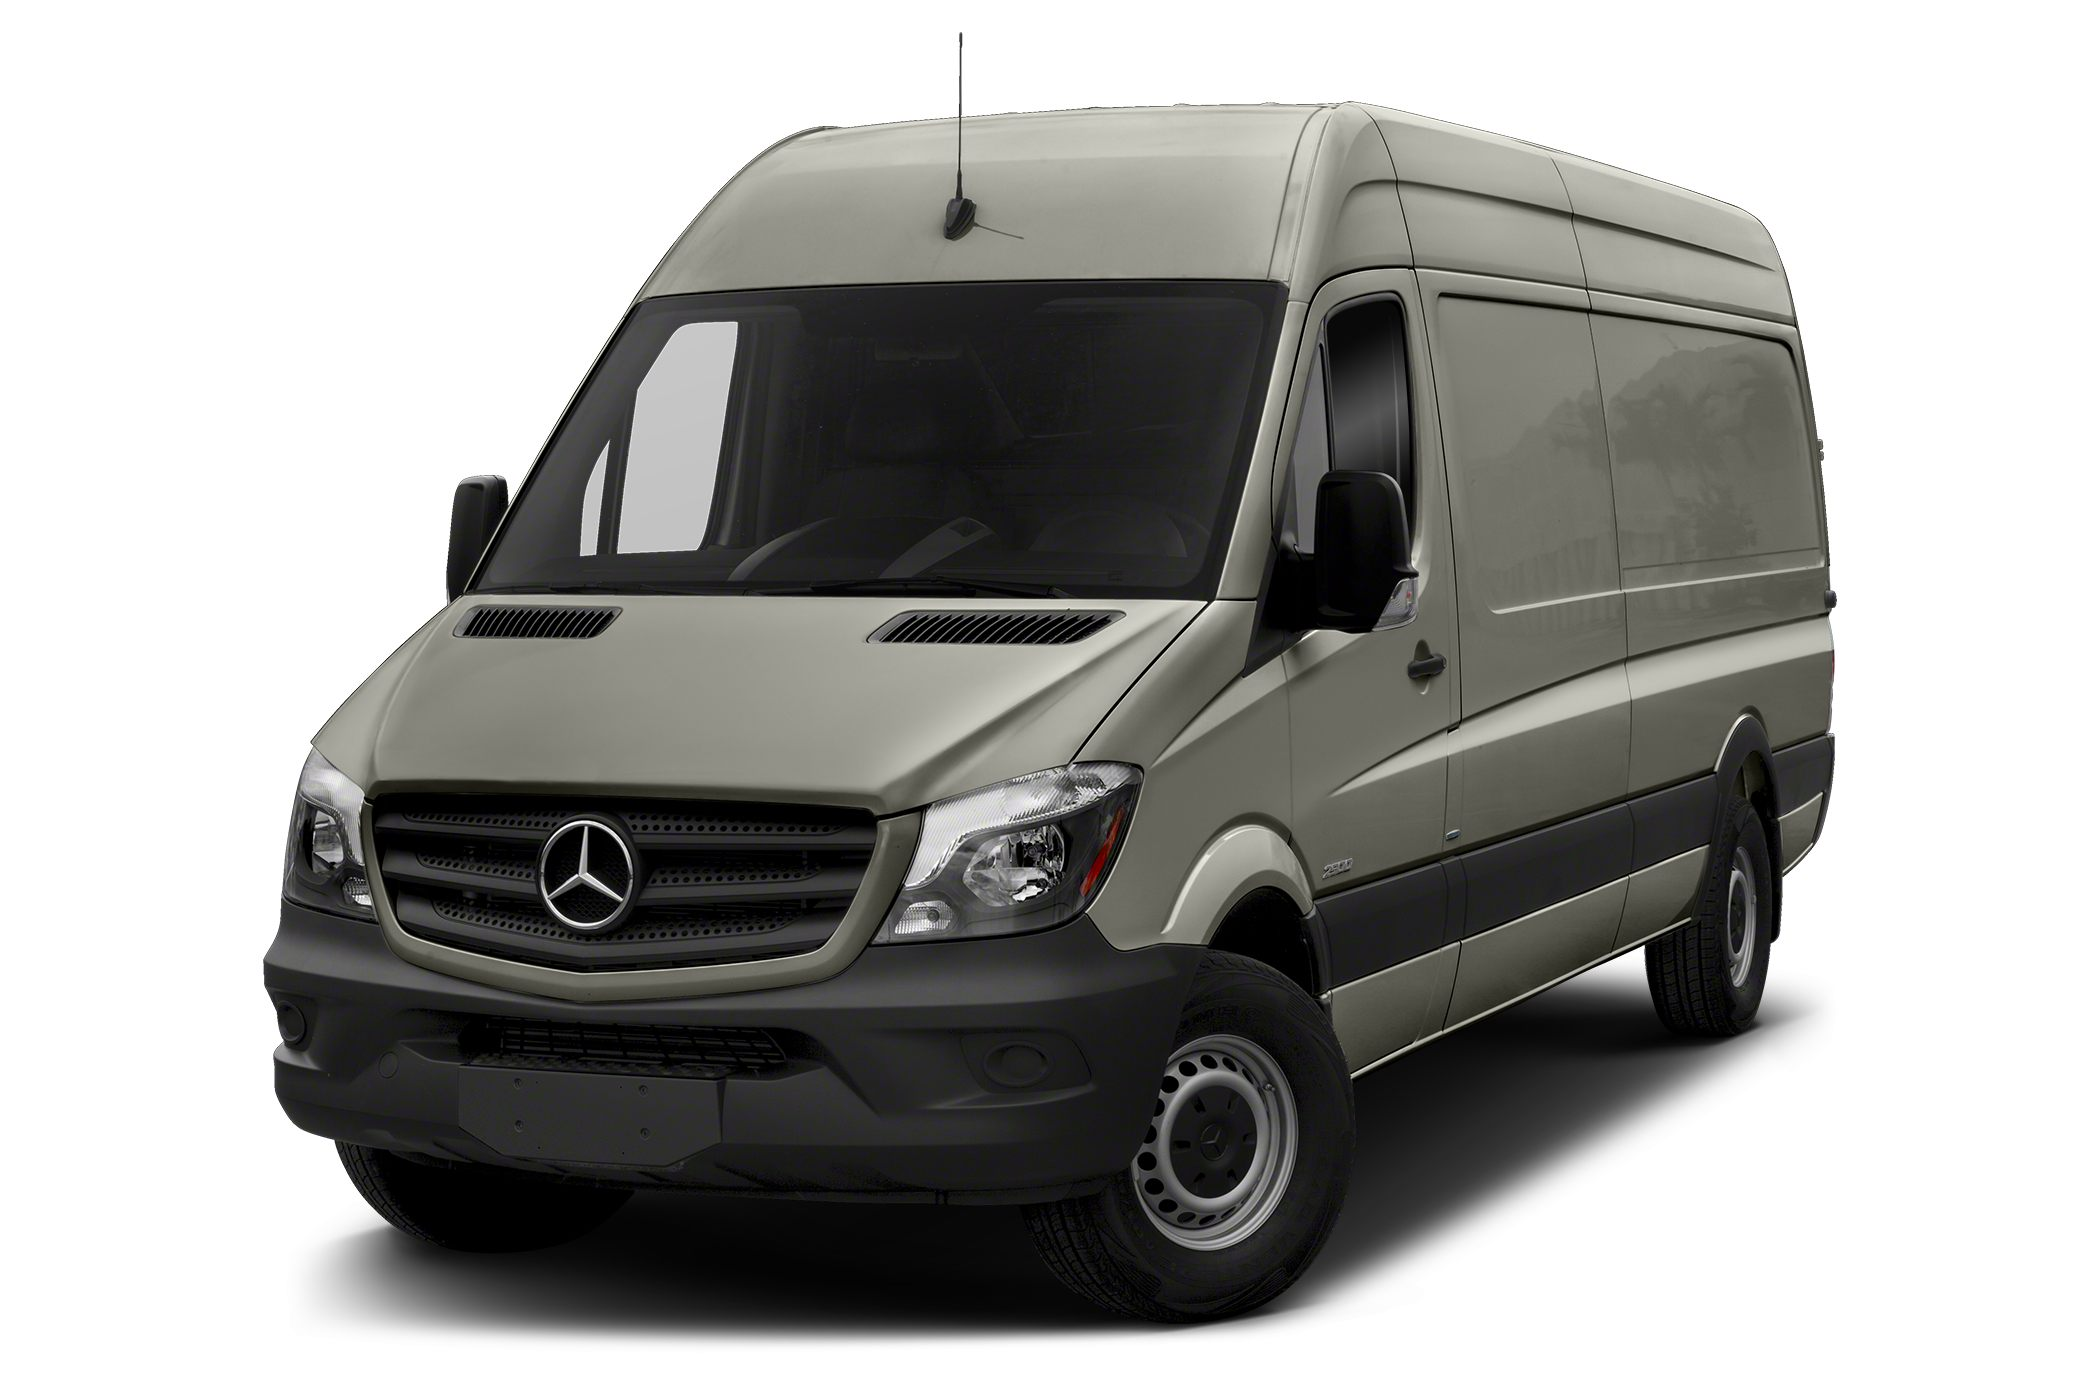 2018 Mercedes Benz Sprinter 2500 High Roof V6 Cargo Van 170 In Wb 4wd Specs And Prices